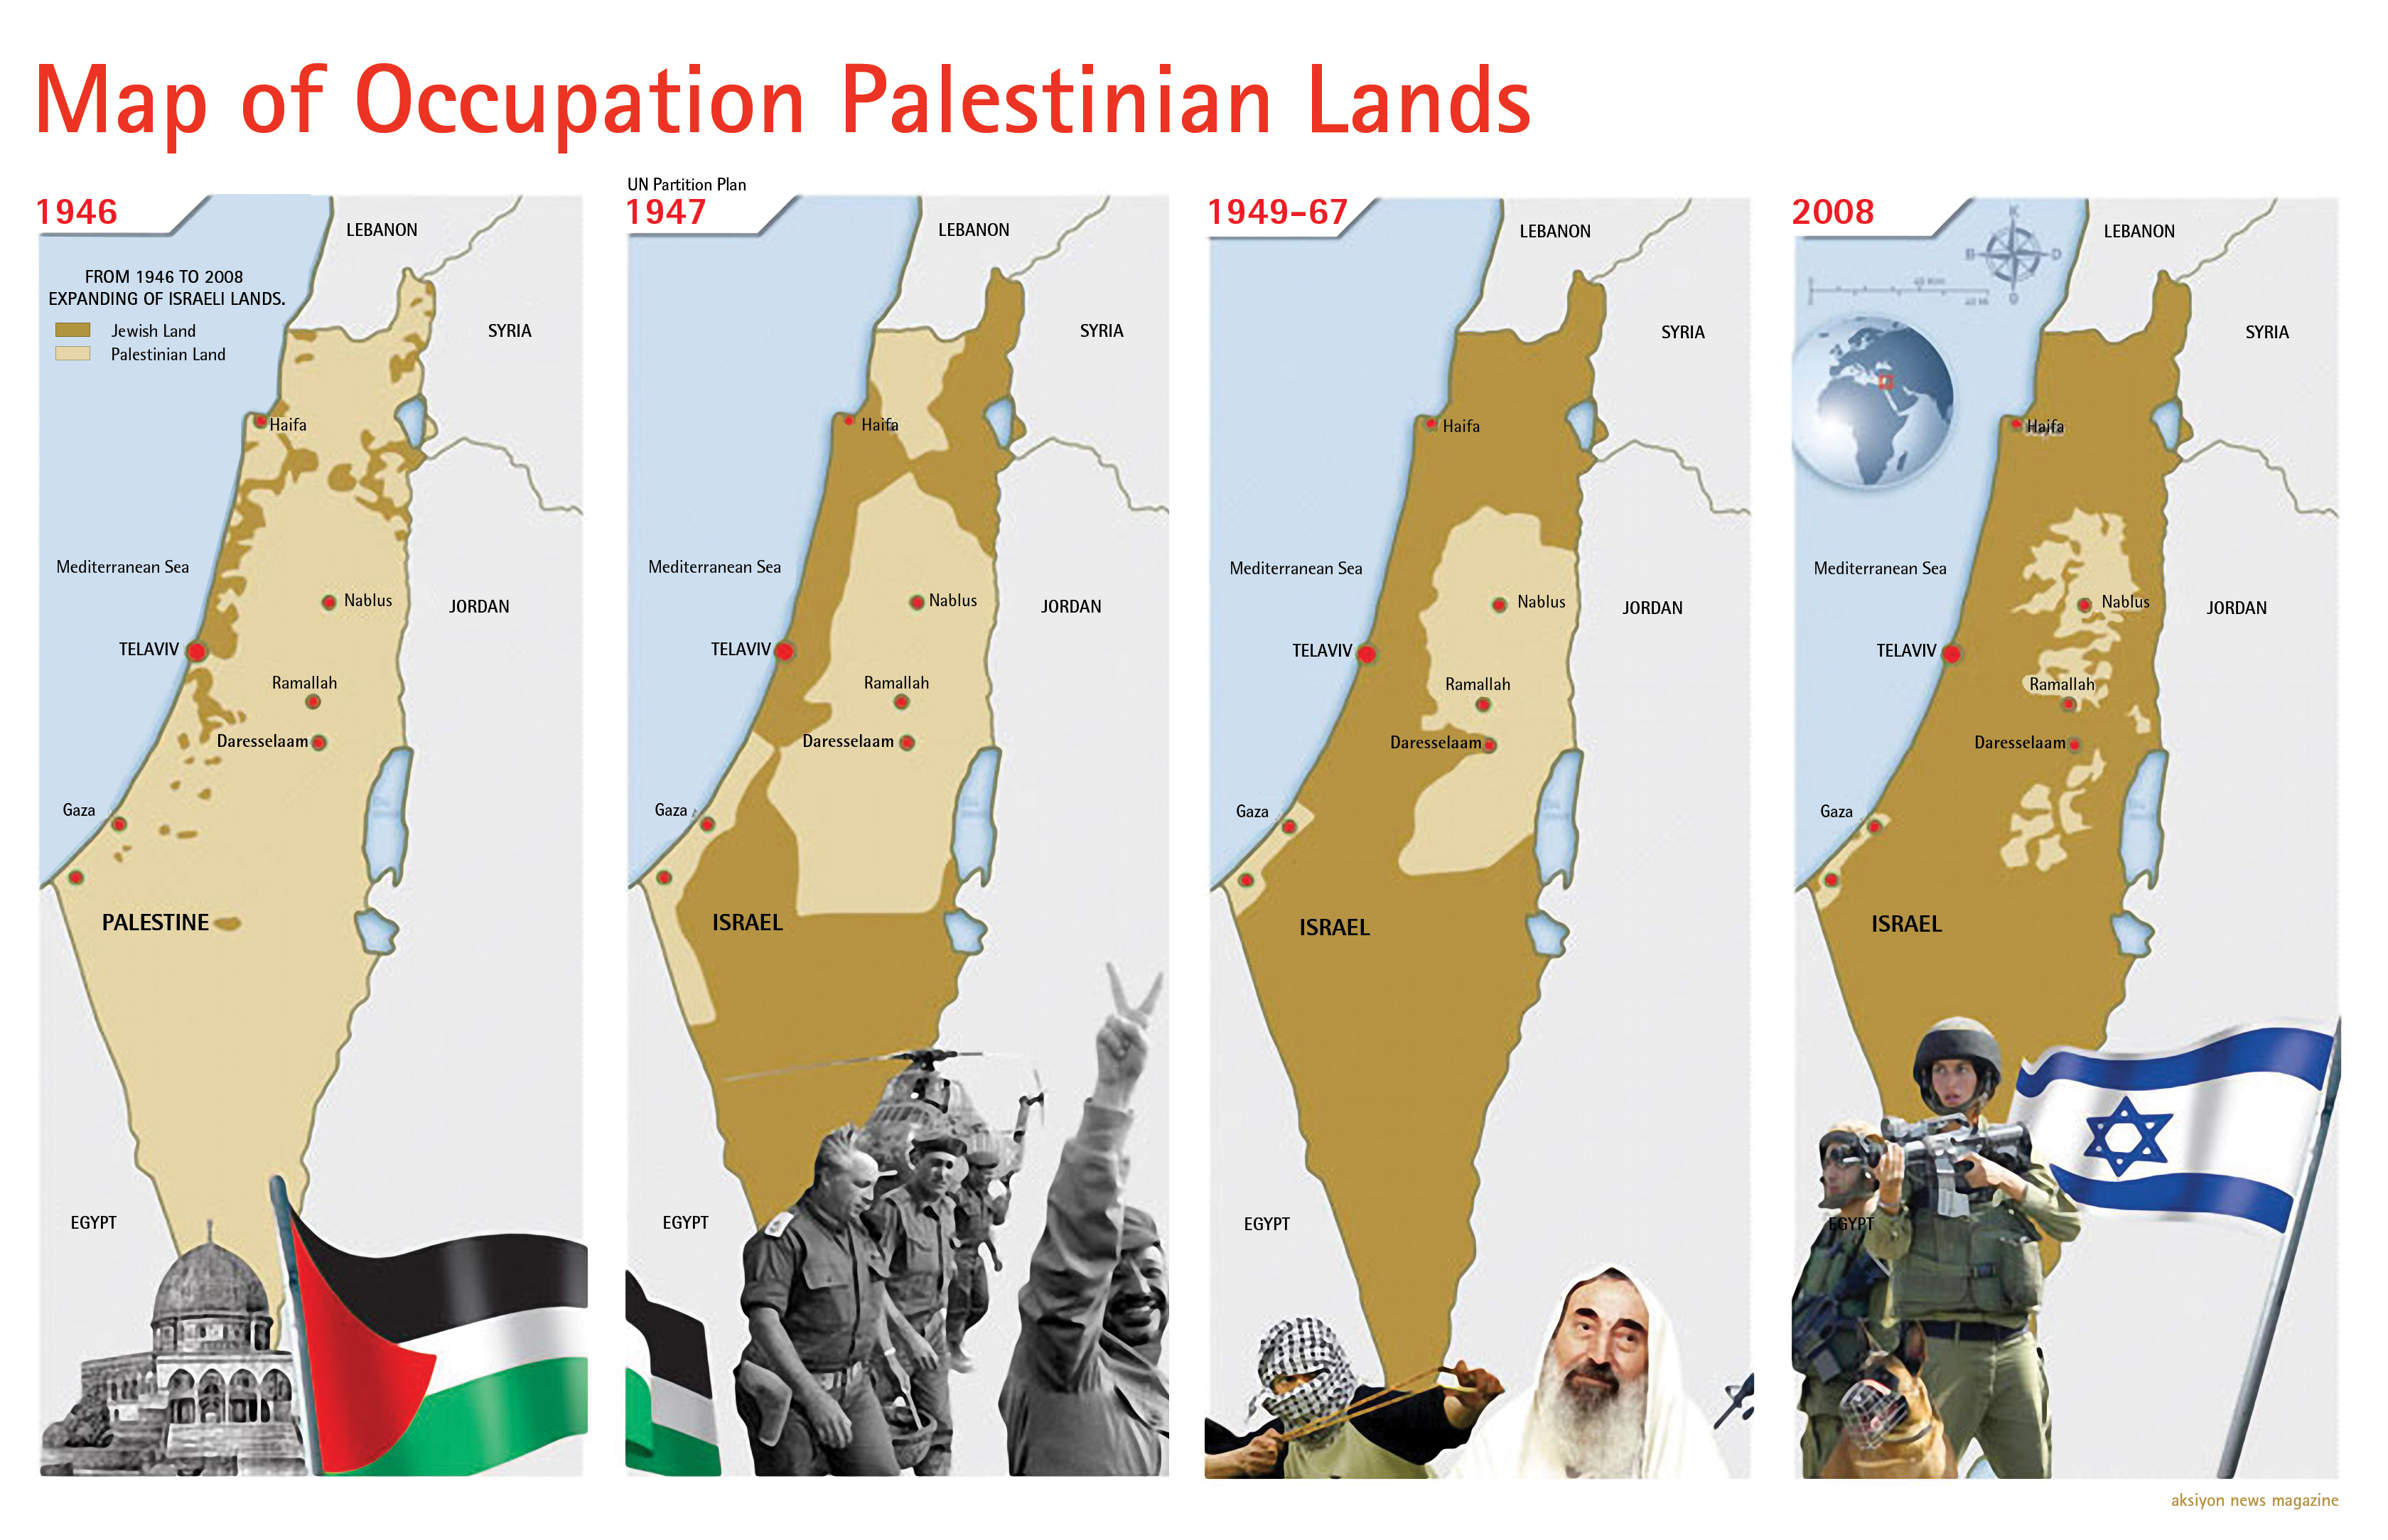 gazaunderattack zionist lies debunked occupied   click to enlarge